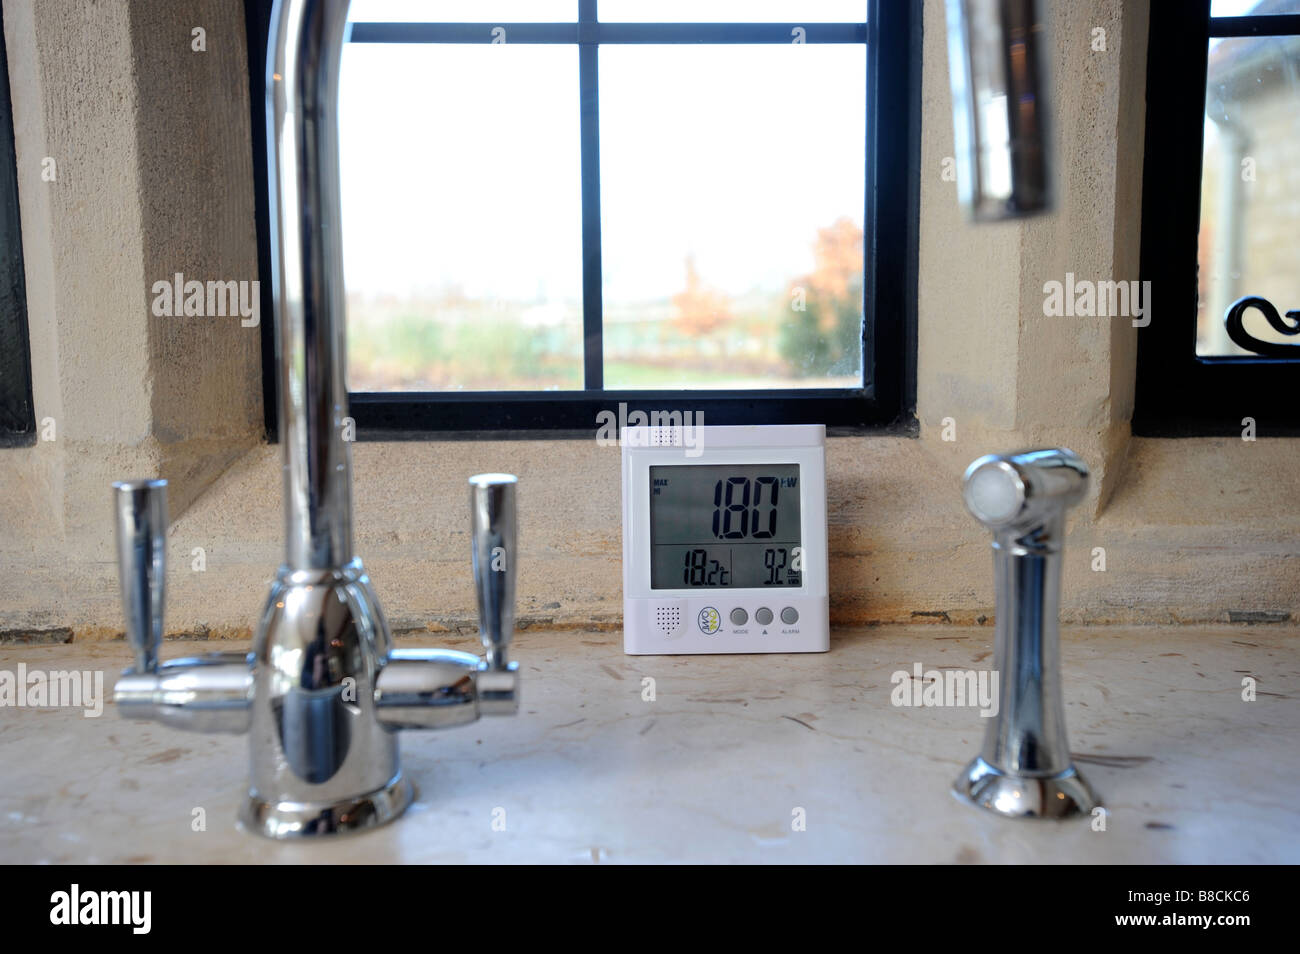 AN ENERGY CONSUMPTION MONITOR DISPLAYING THE TOTAL CURRENT POWER USAGE IN A HOUSE UK Stock Photo